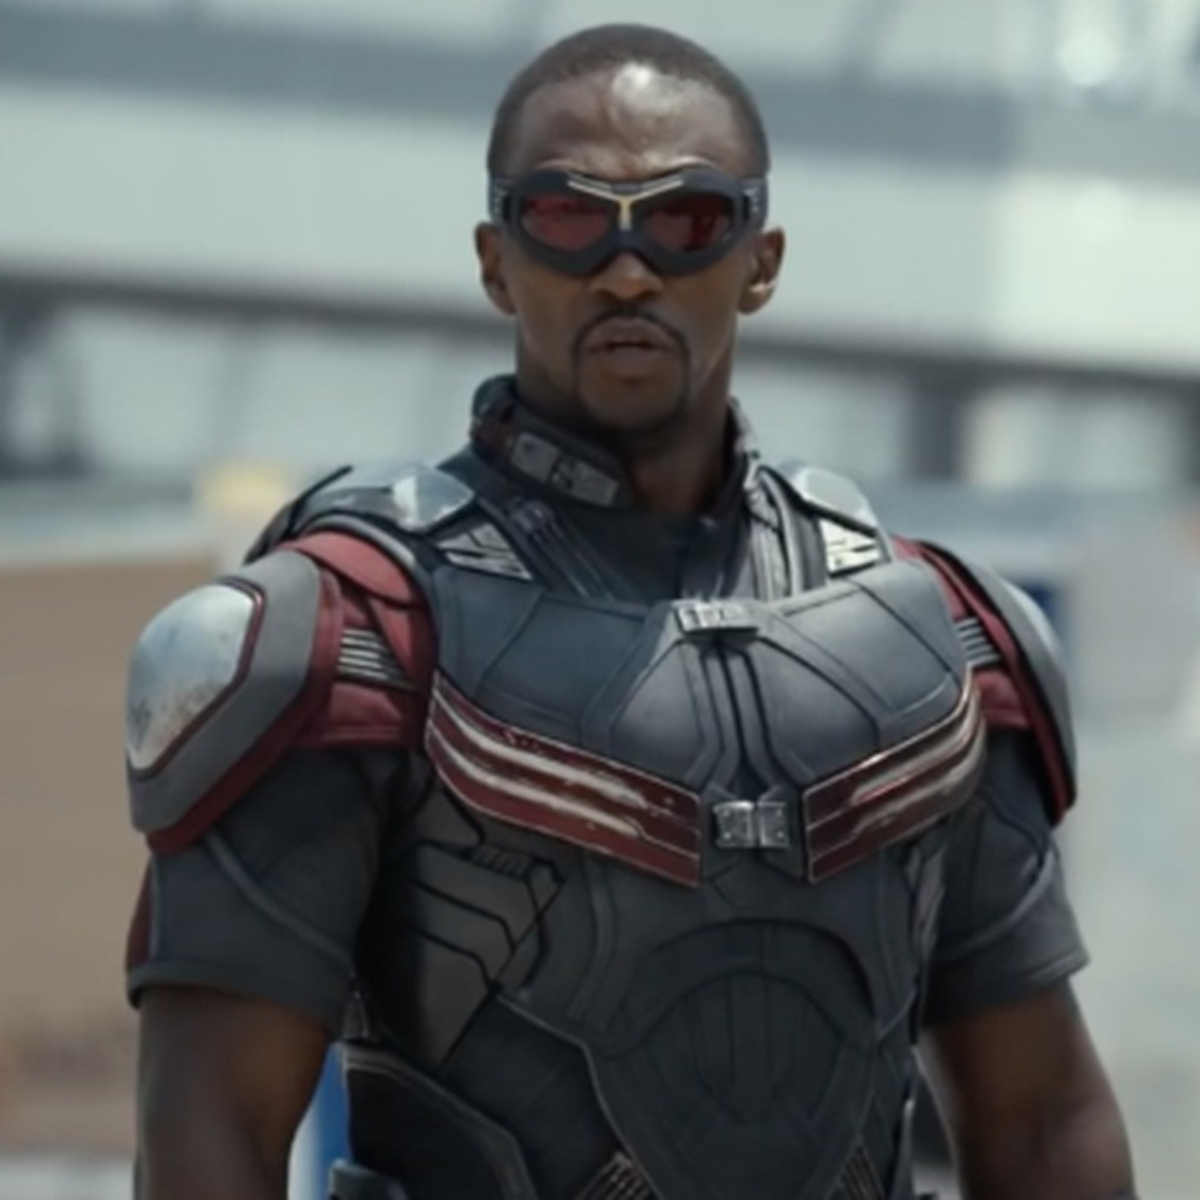 Captain America 4: Anthony Mackie to star in a standalone movie after The Falcon and the Winter Soldier?